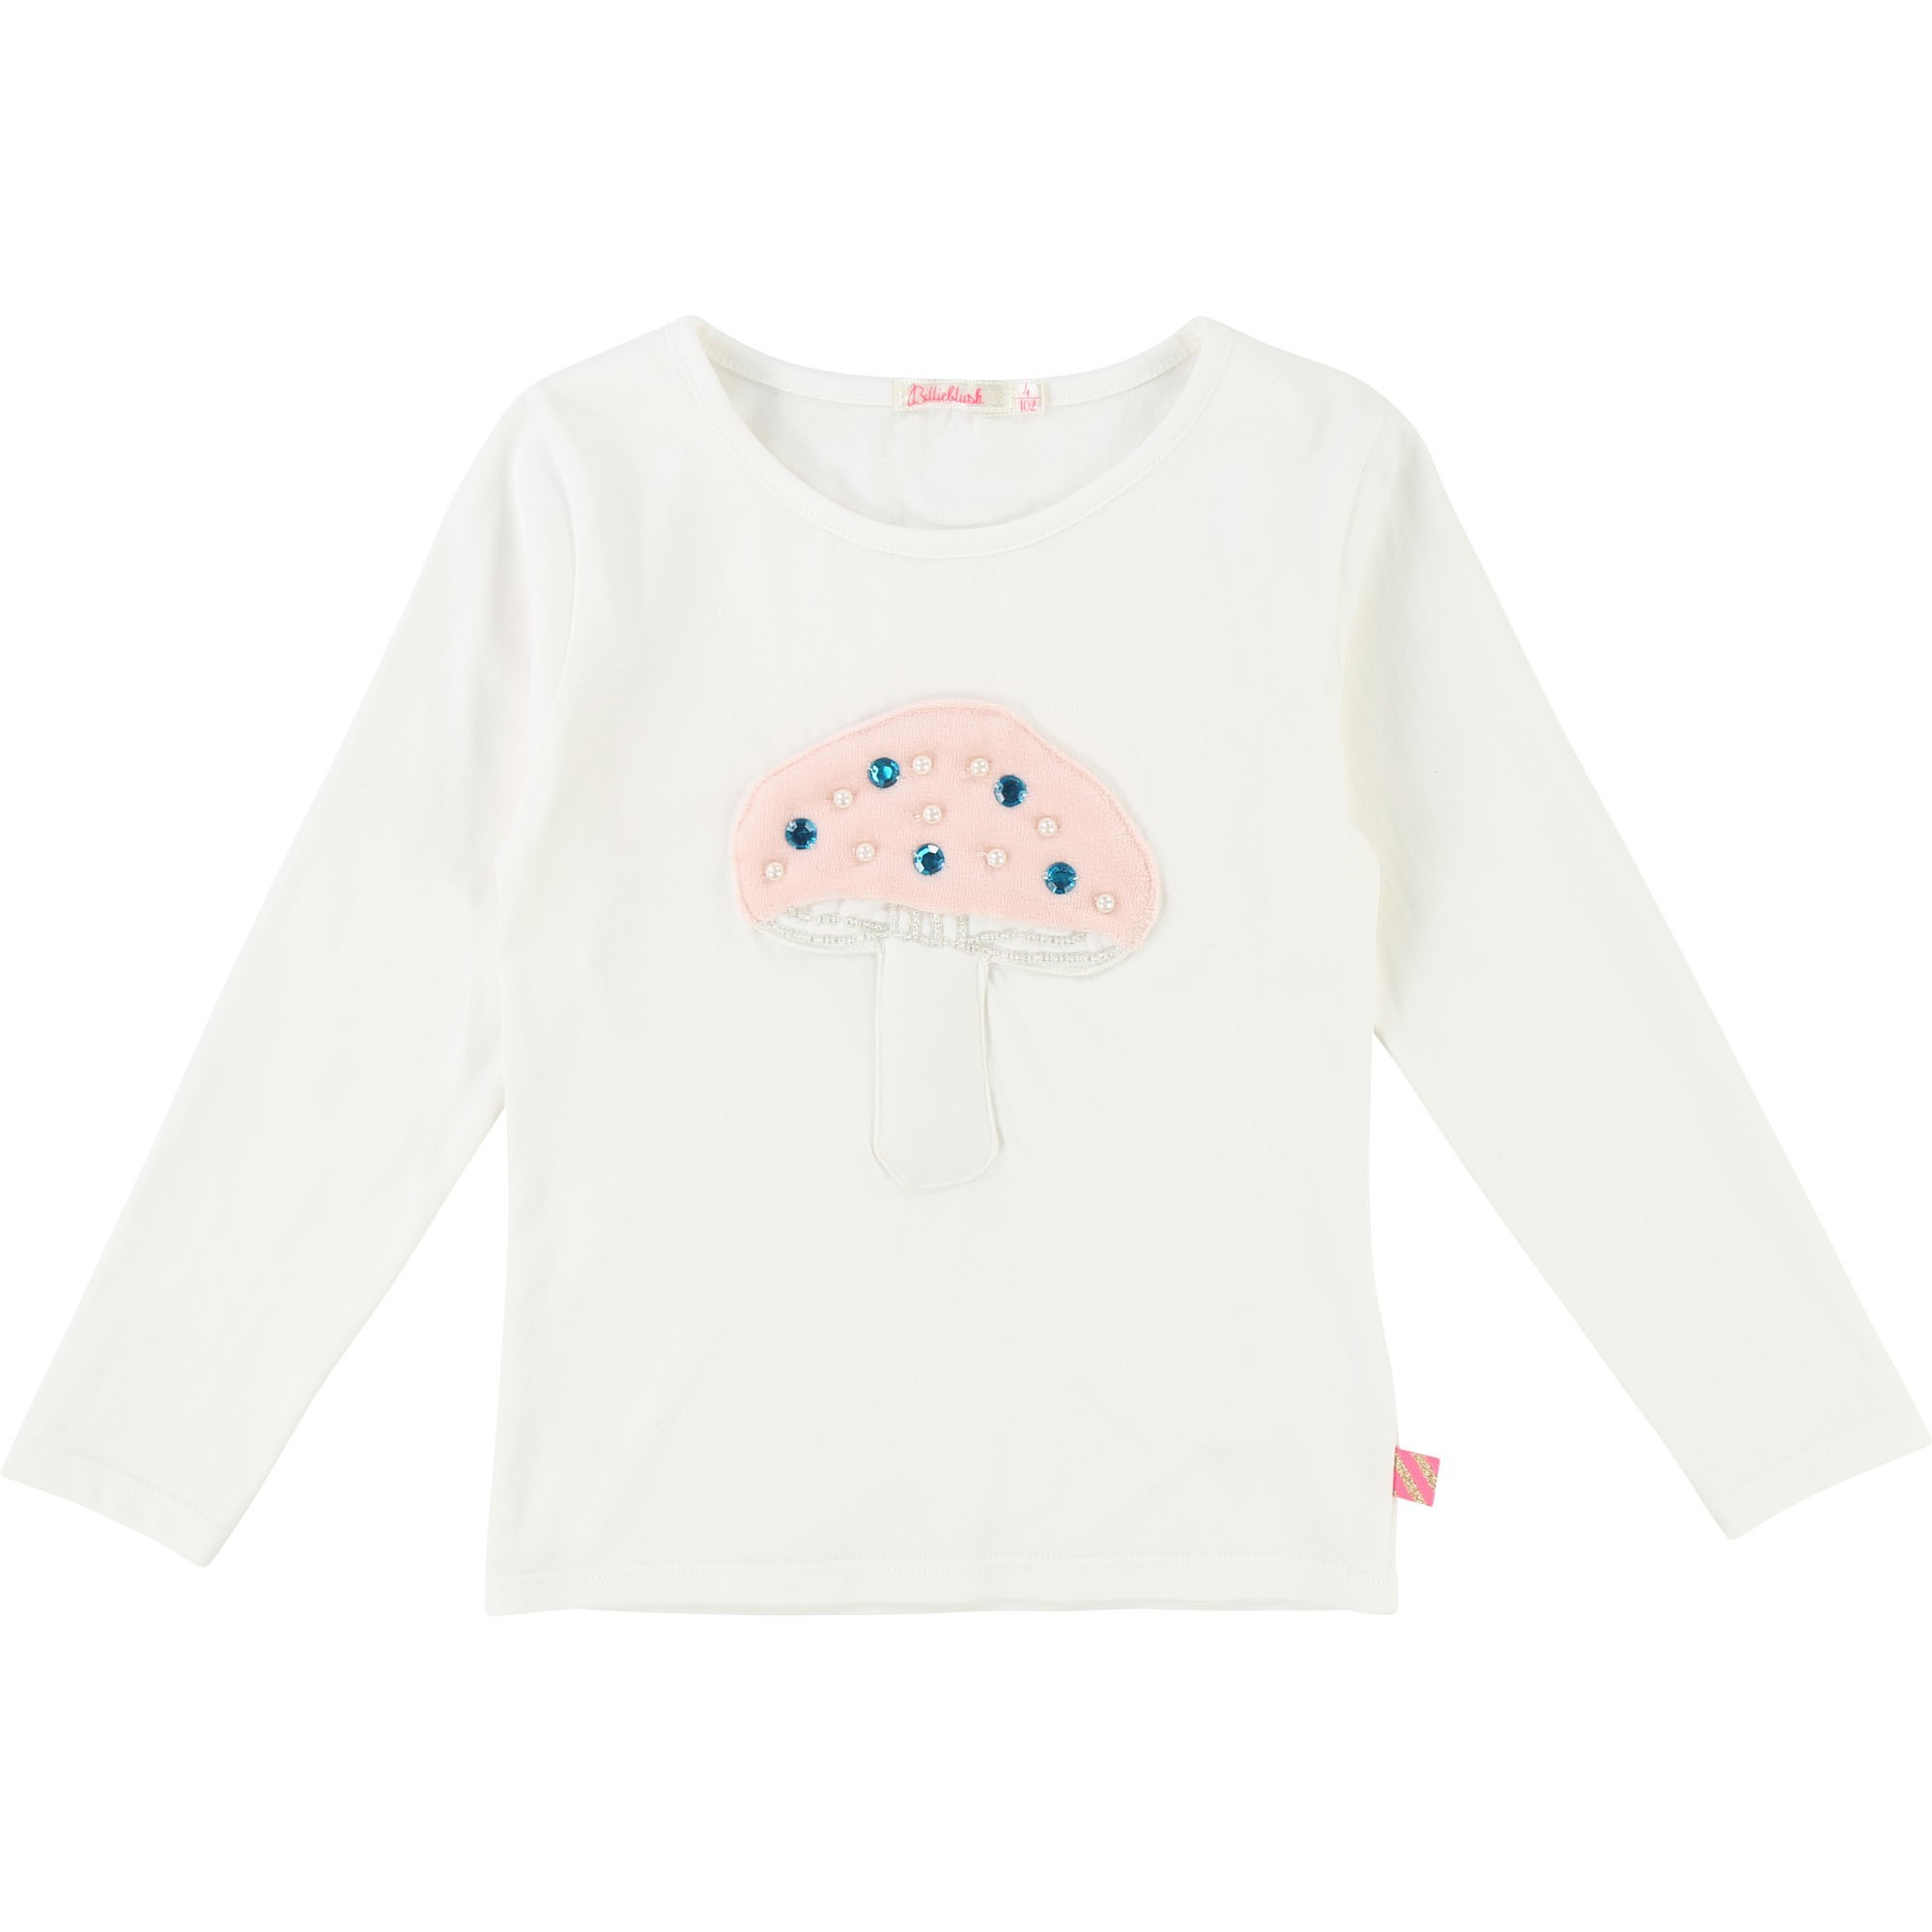 Cotton fancy mushroom t-shirt BILLIEBLUSH for GIRL